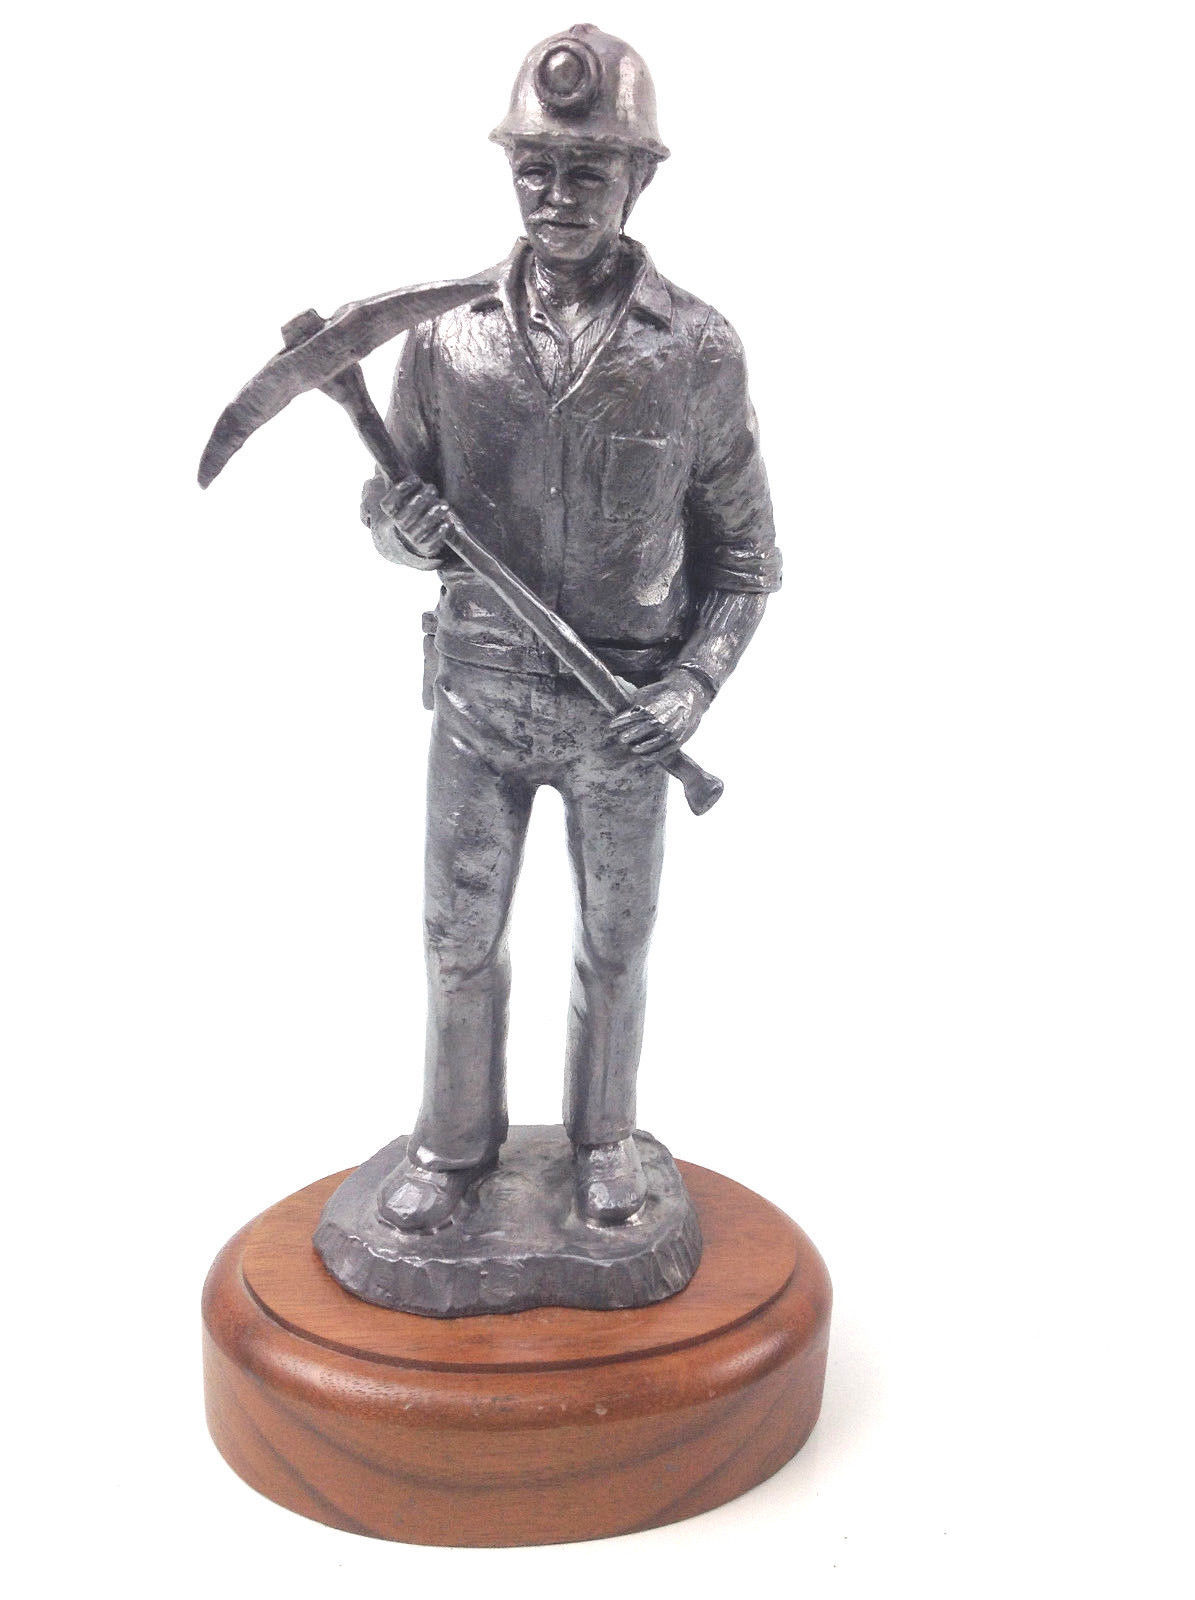 MIchael Ricker Pewter Little Al Boy Leaning on Mailbox with KITE